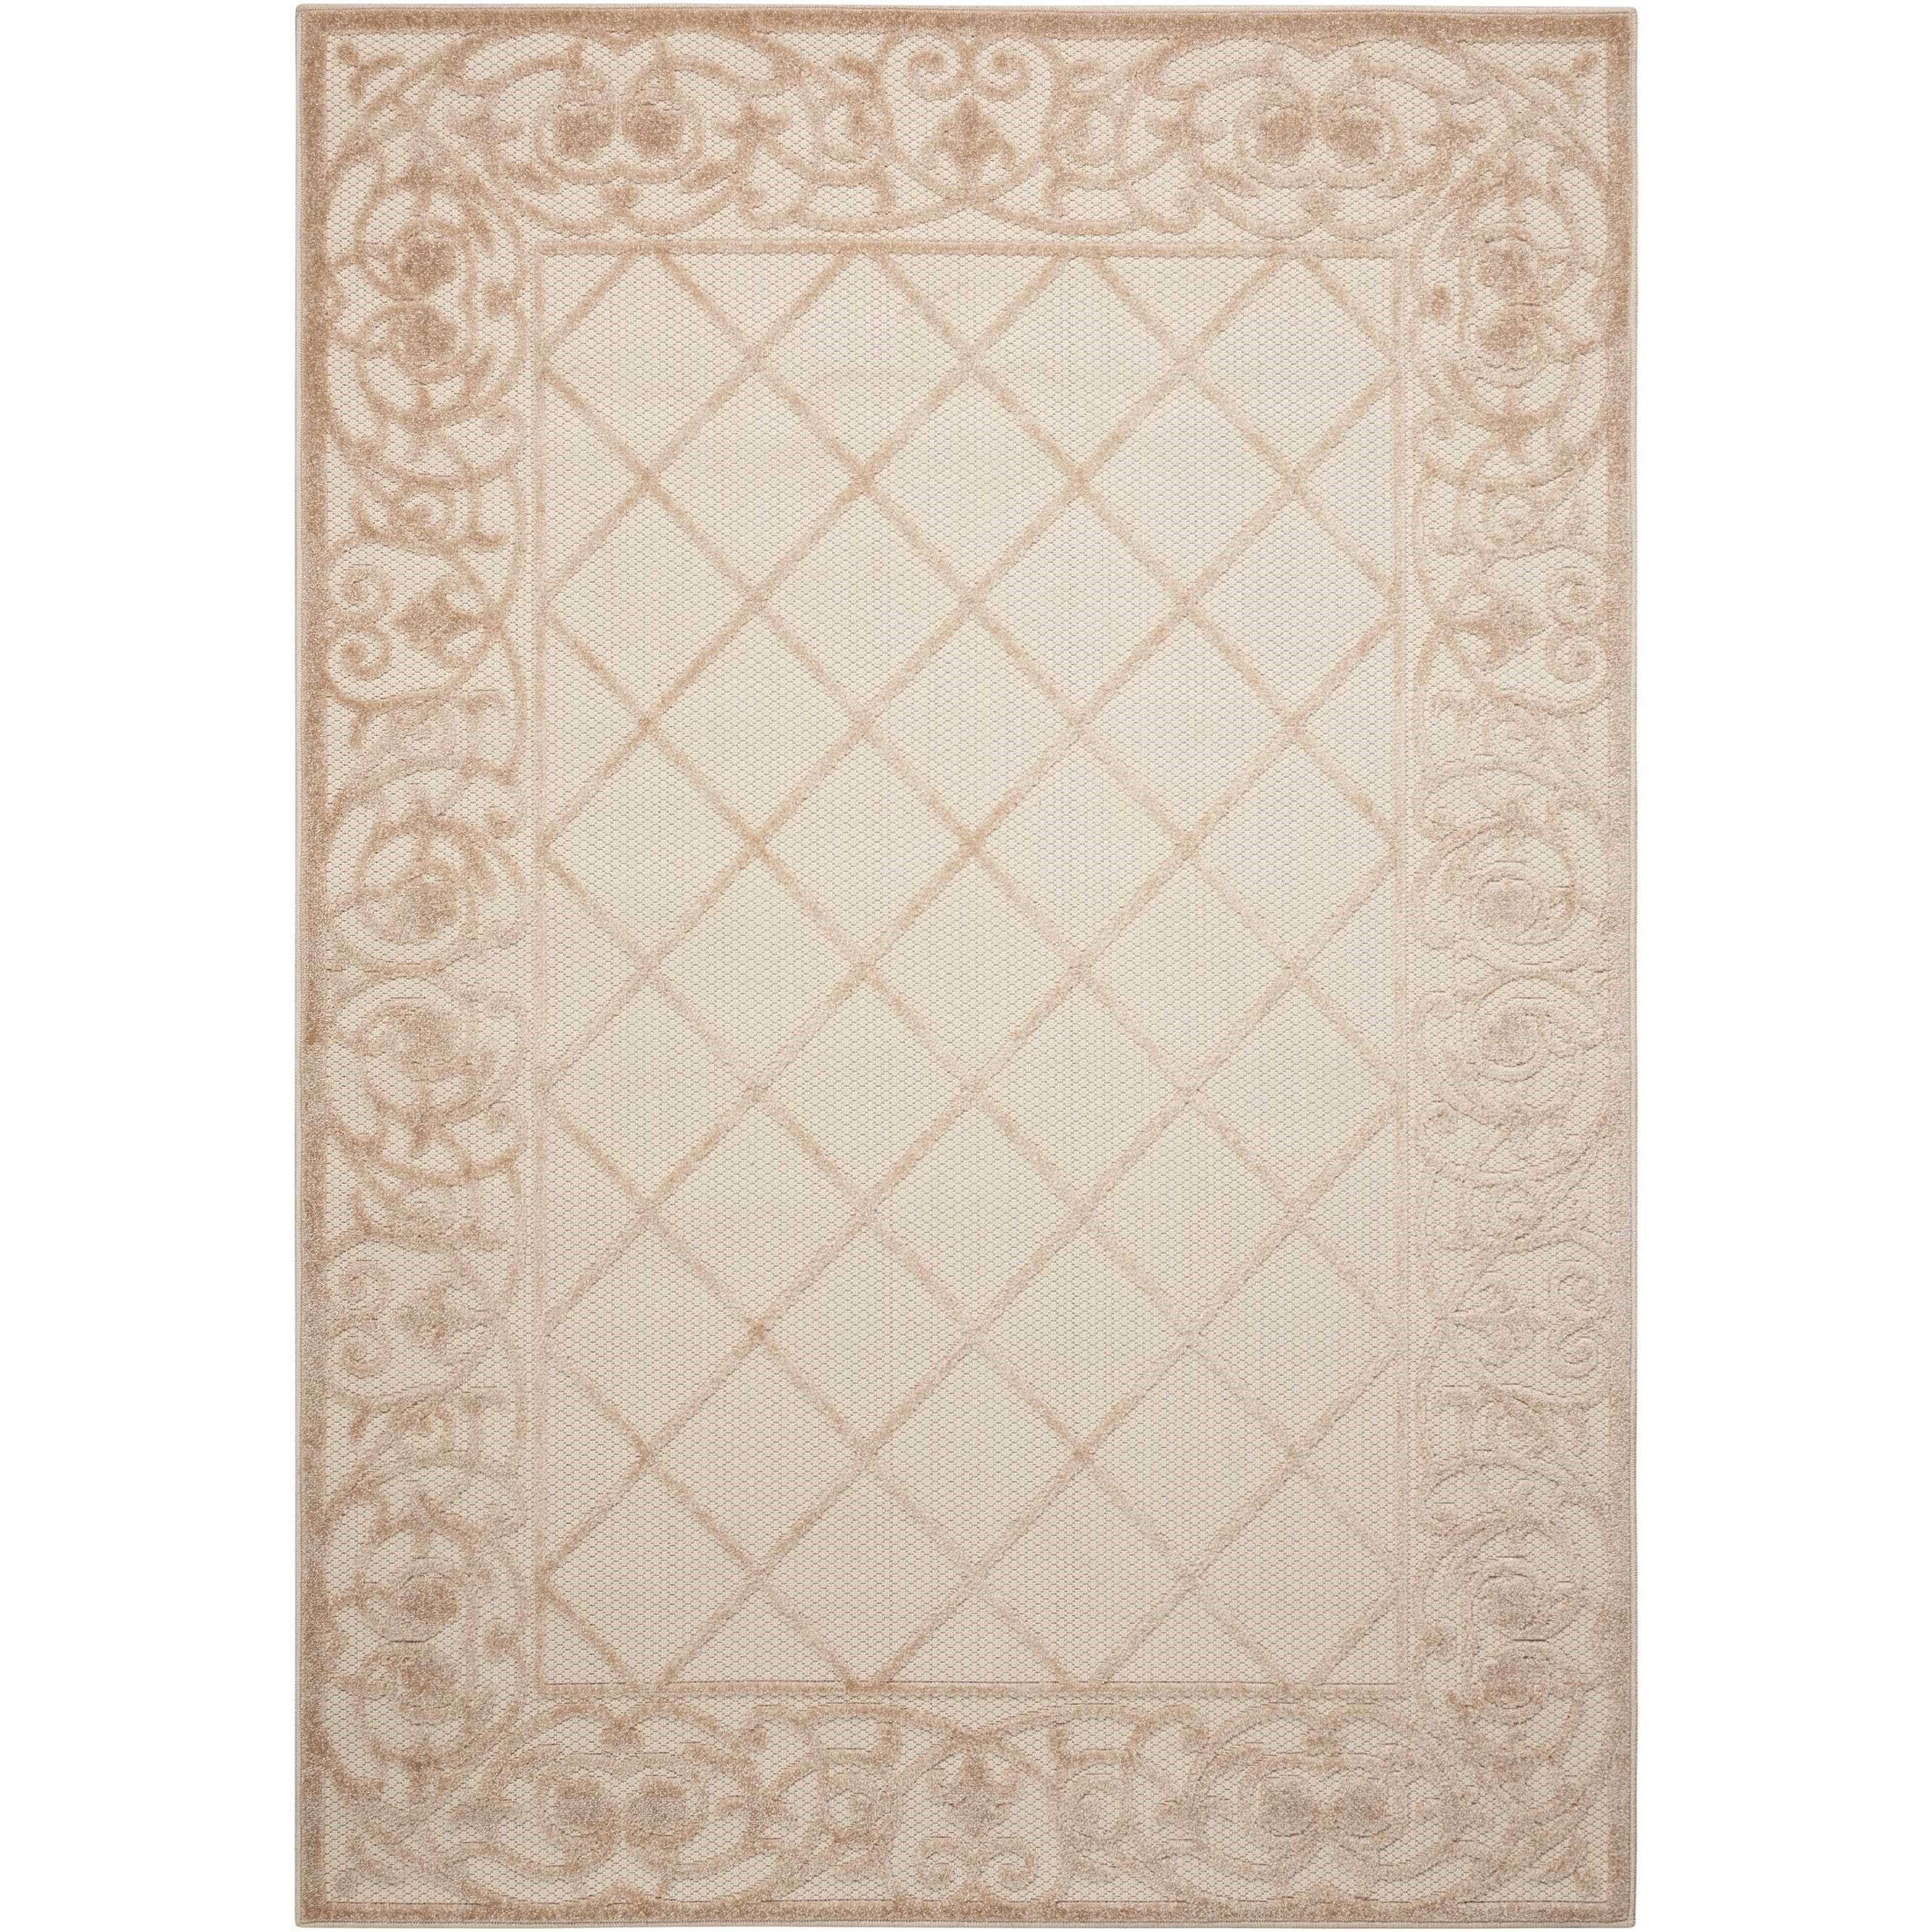 "Aloha 9'6"" X 13' Cream Rug by Nourison at Home Collections Furniture"